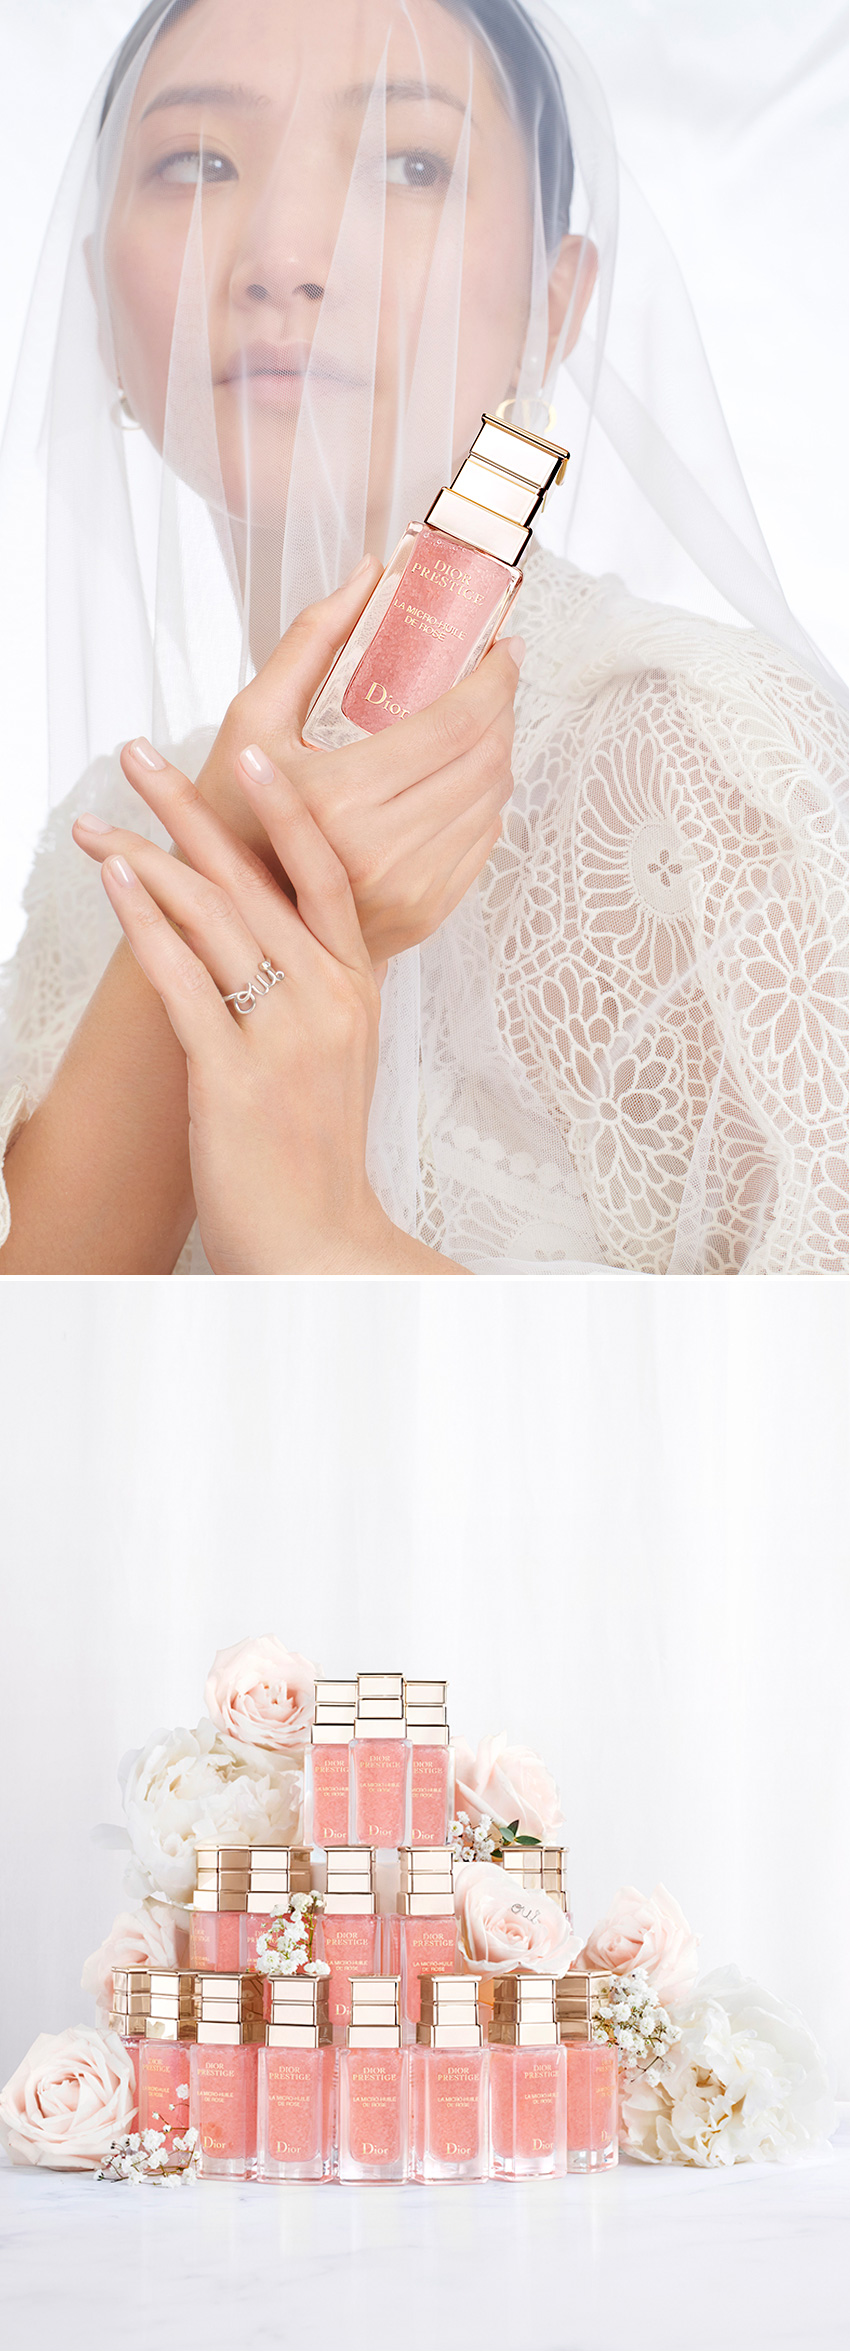 Radiante skin for your wedding day with Dior Skincare Dior Capture Totale